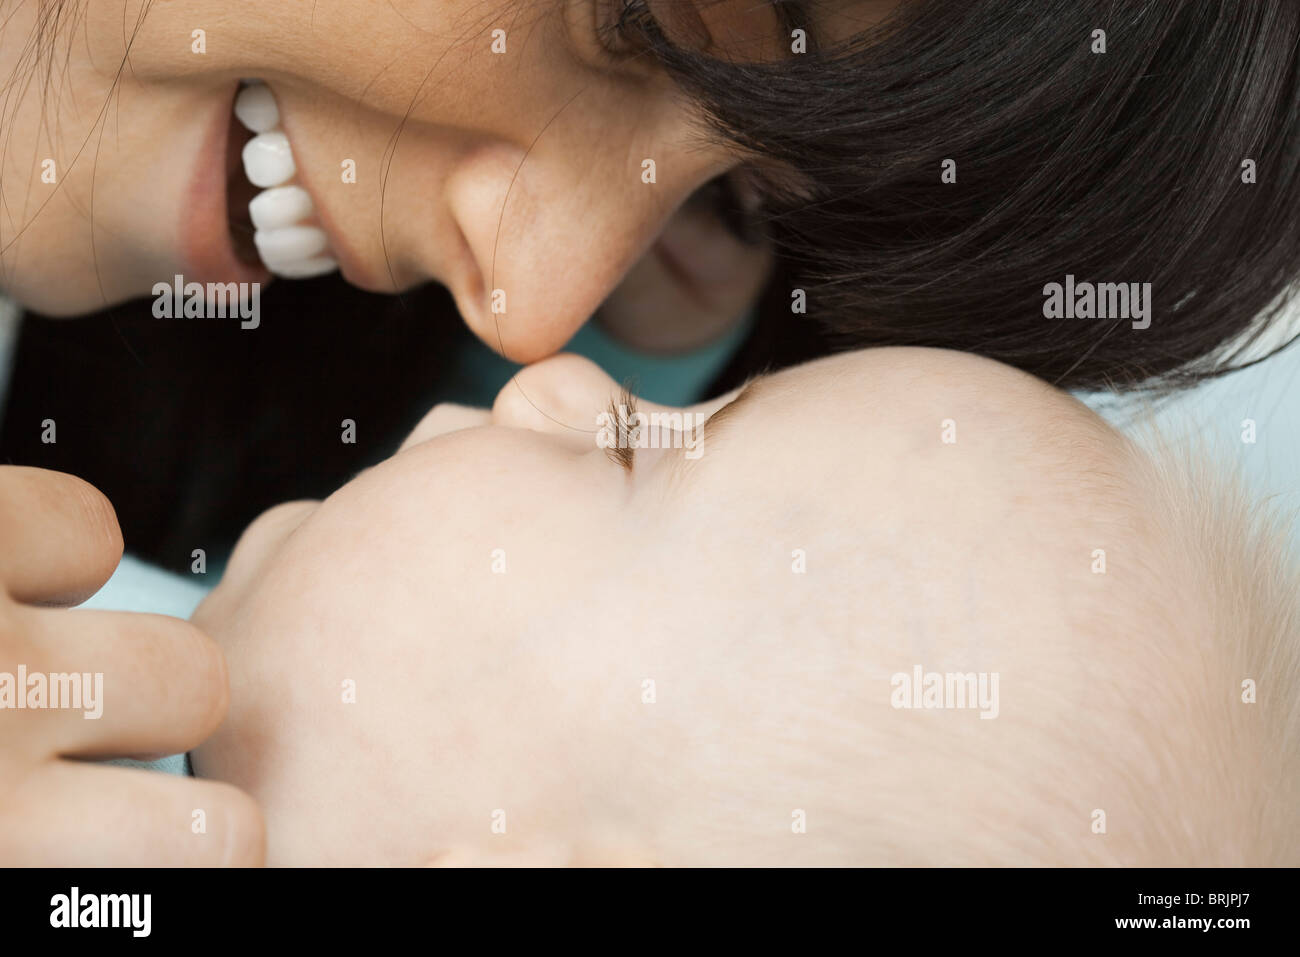 Mother nuzzling baby - Stock Image